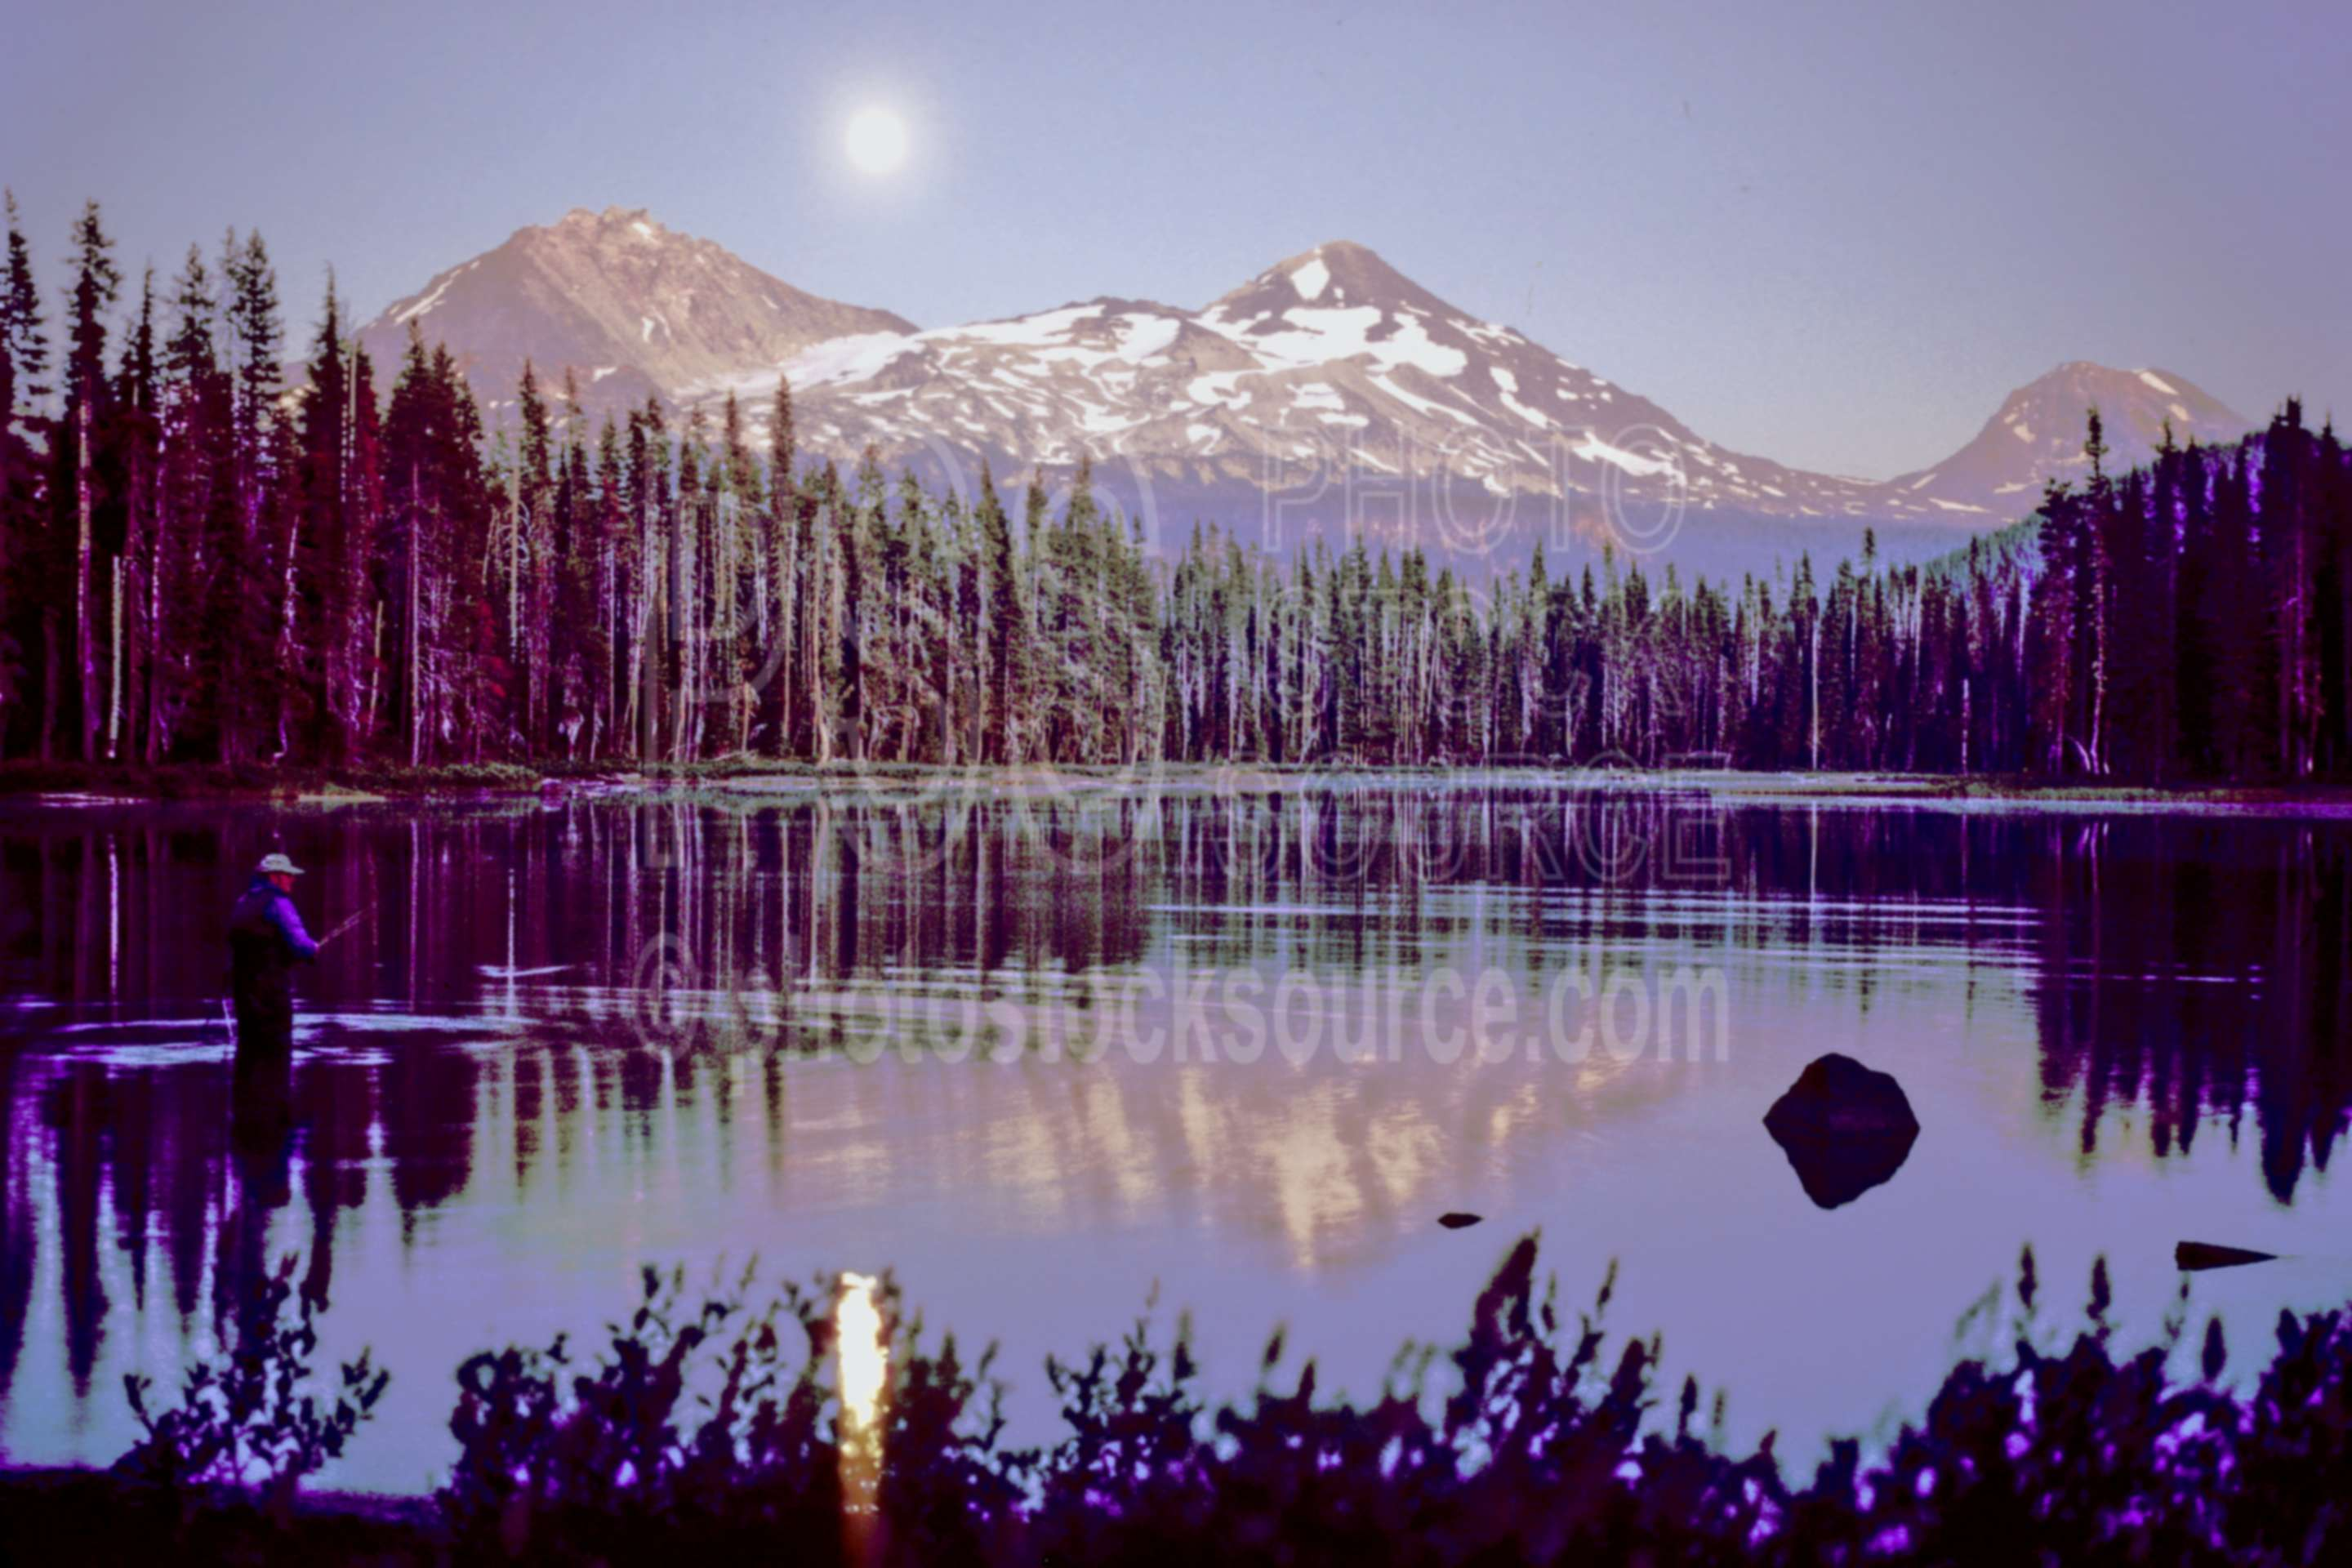 Three Sisters Moonrise,scott lake,moon,moonrise,middle sister,north sister,south sister,lake,night,usas,sun moon sky,lakes rivers,mountains